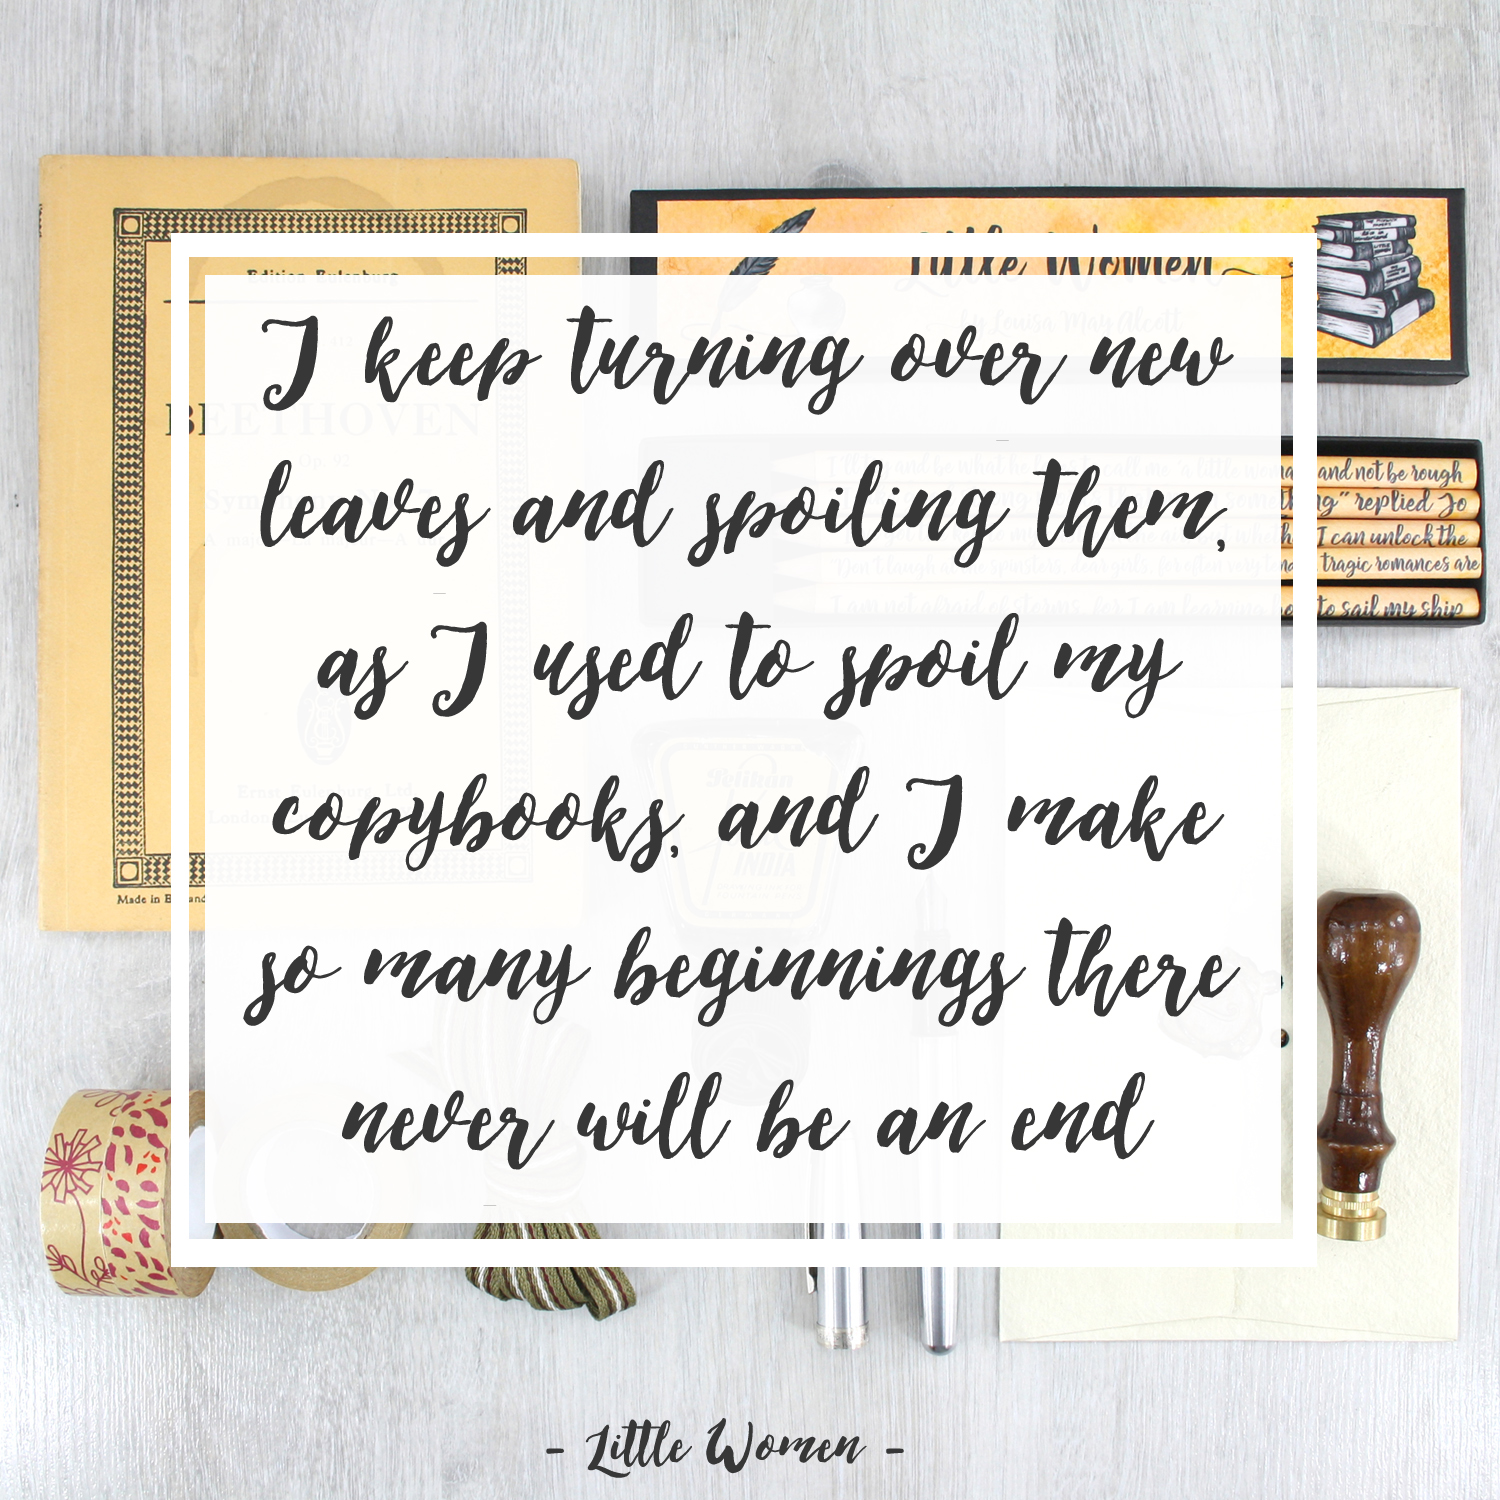 I keep turning over new leaves and spoiling them, as I used to spoil my copybooks, and I make so many beginnings there never will be an end